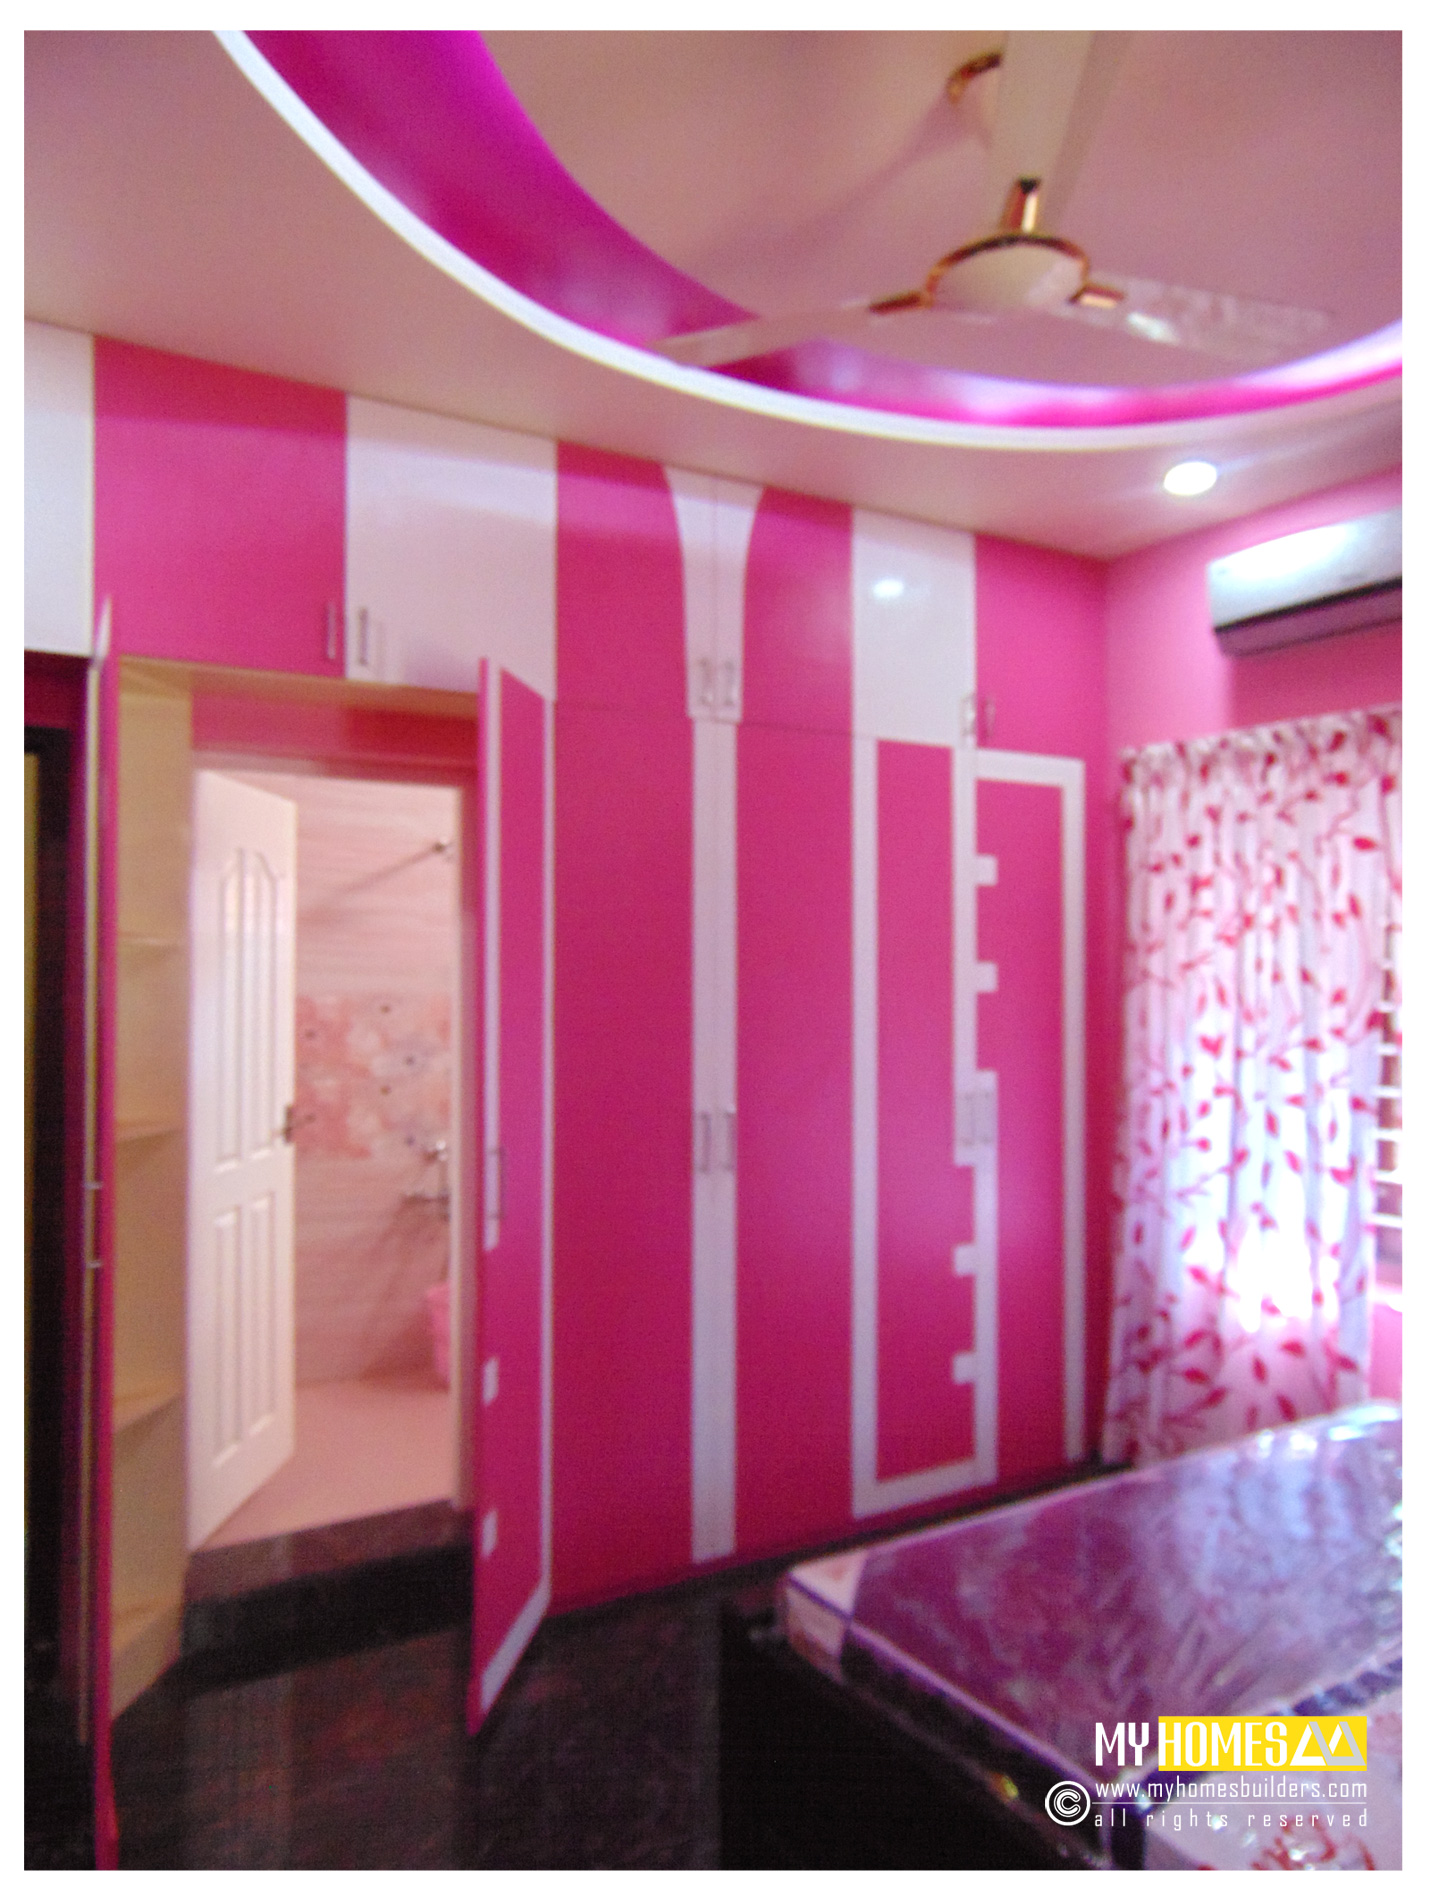 Modern interior idea for home bedroom designs kerala india for Bedroom interior design india